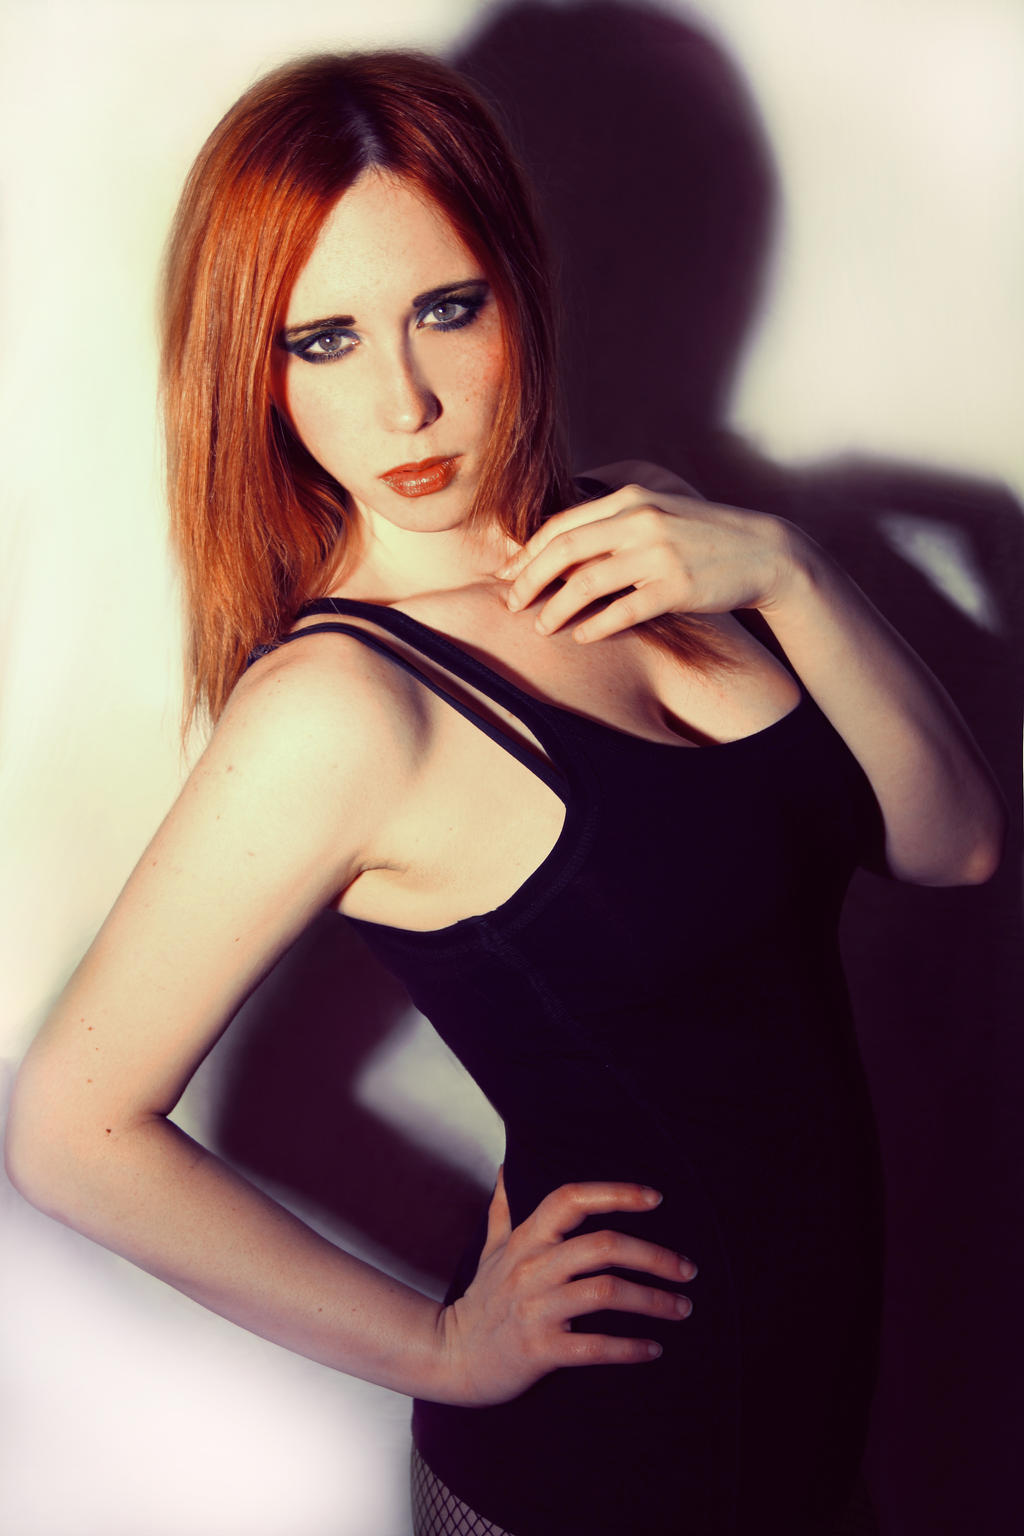 Red hair and attitude by Stephanie-van-Rijn